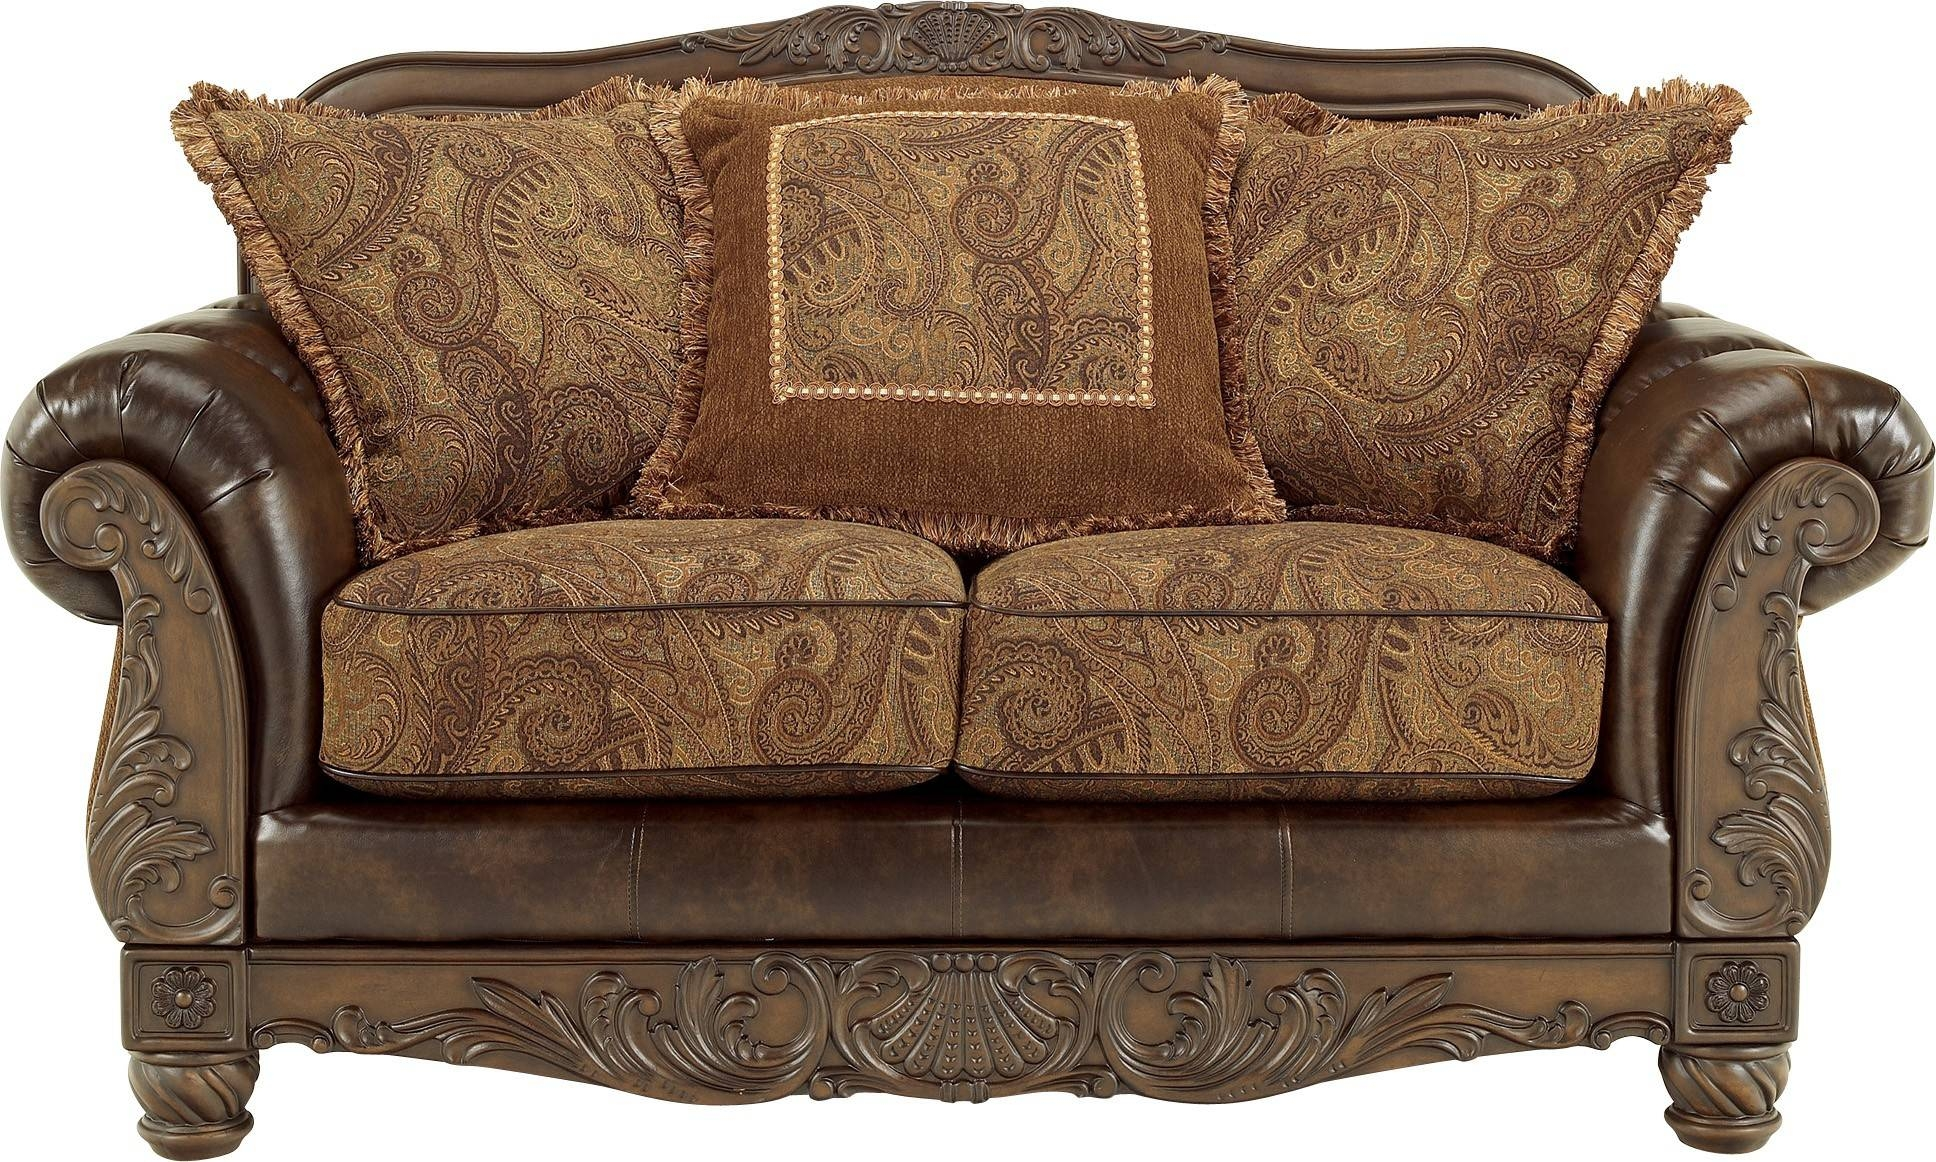 fresco antique durablend upholstery sofa olive green bed 30 the best chairs